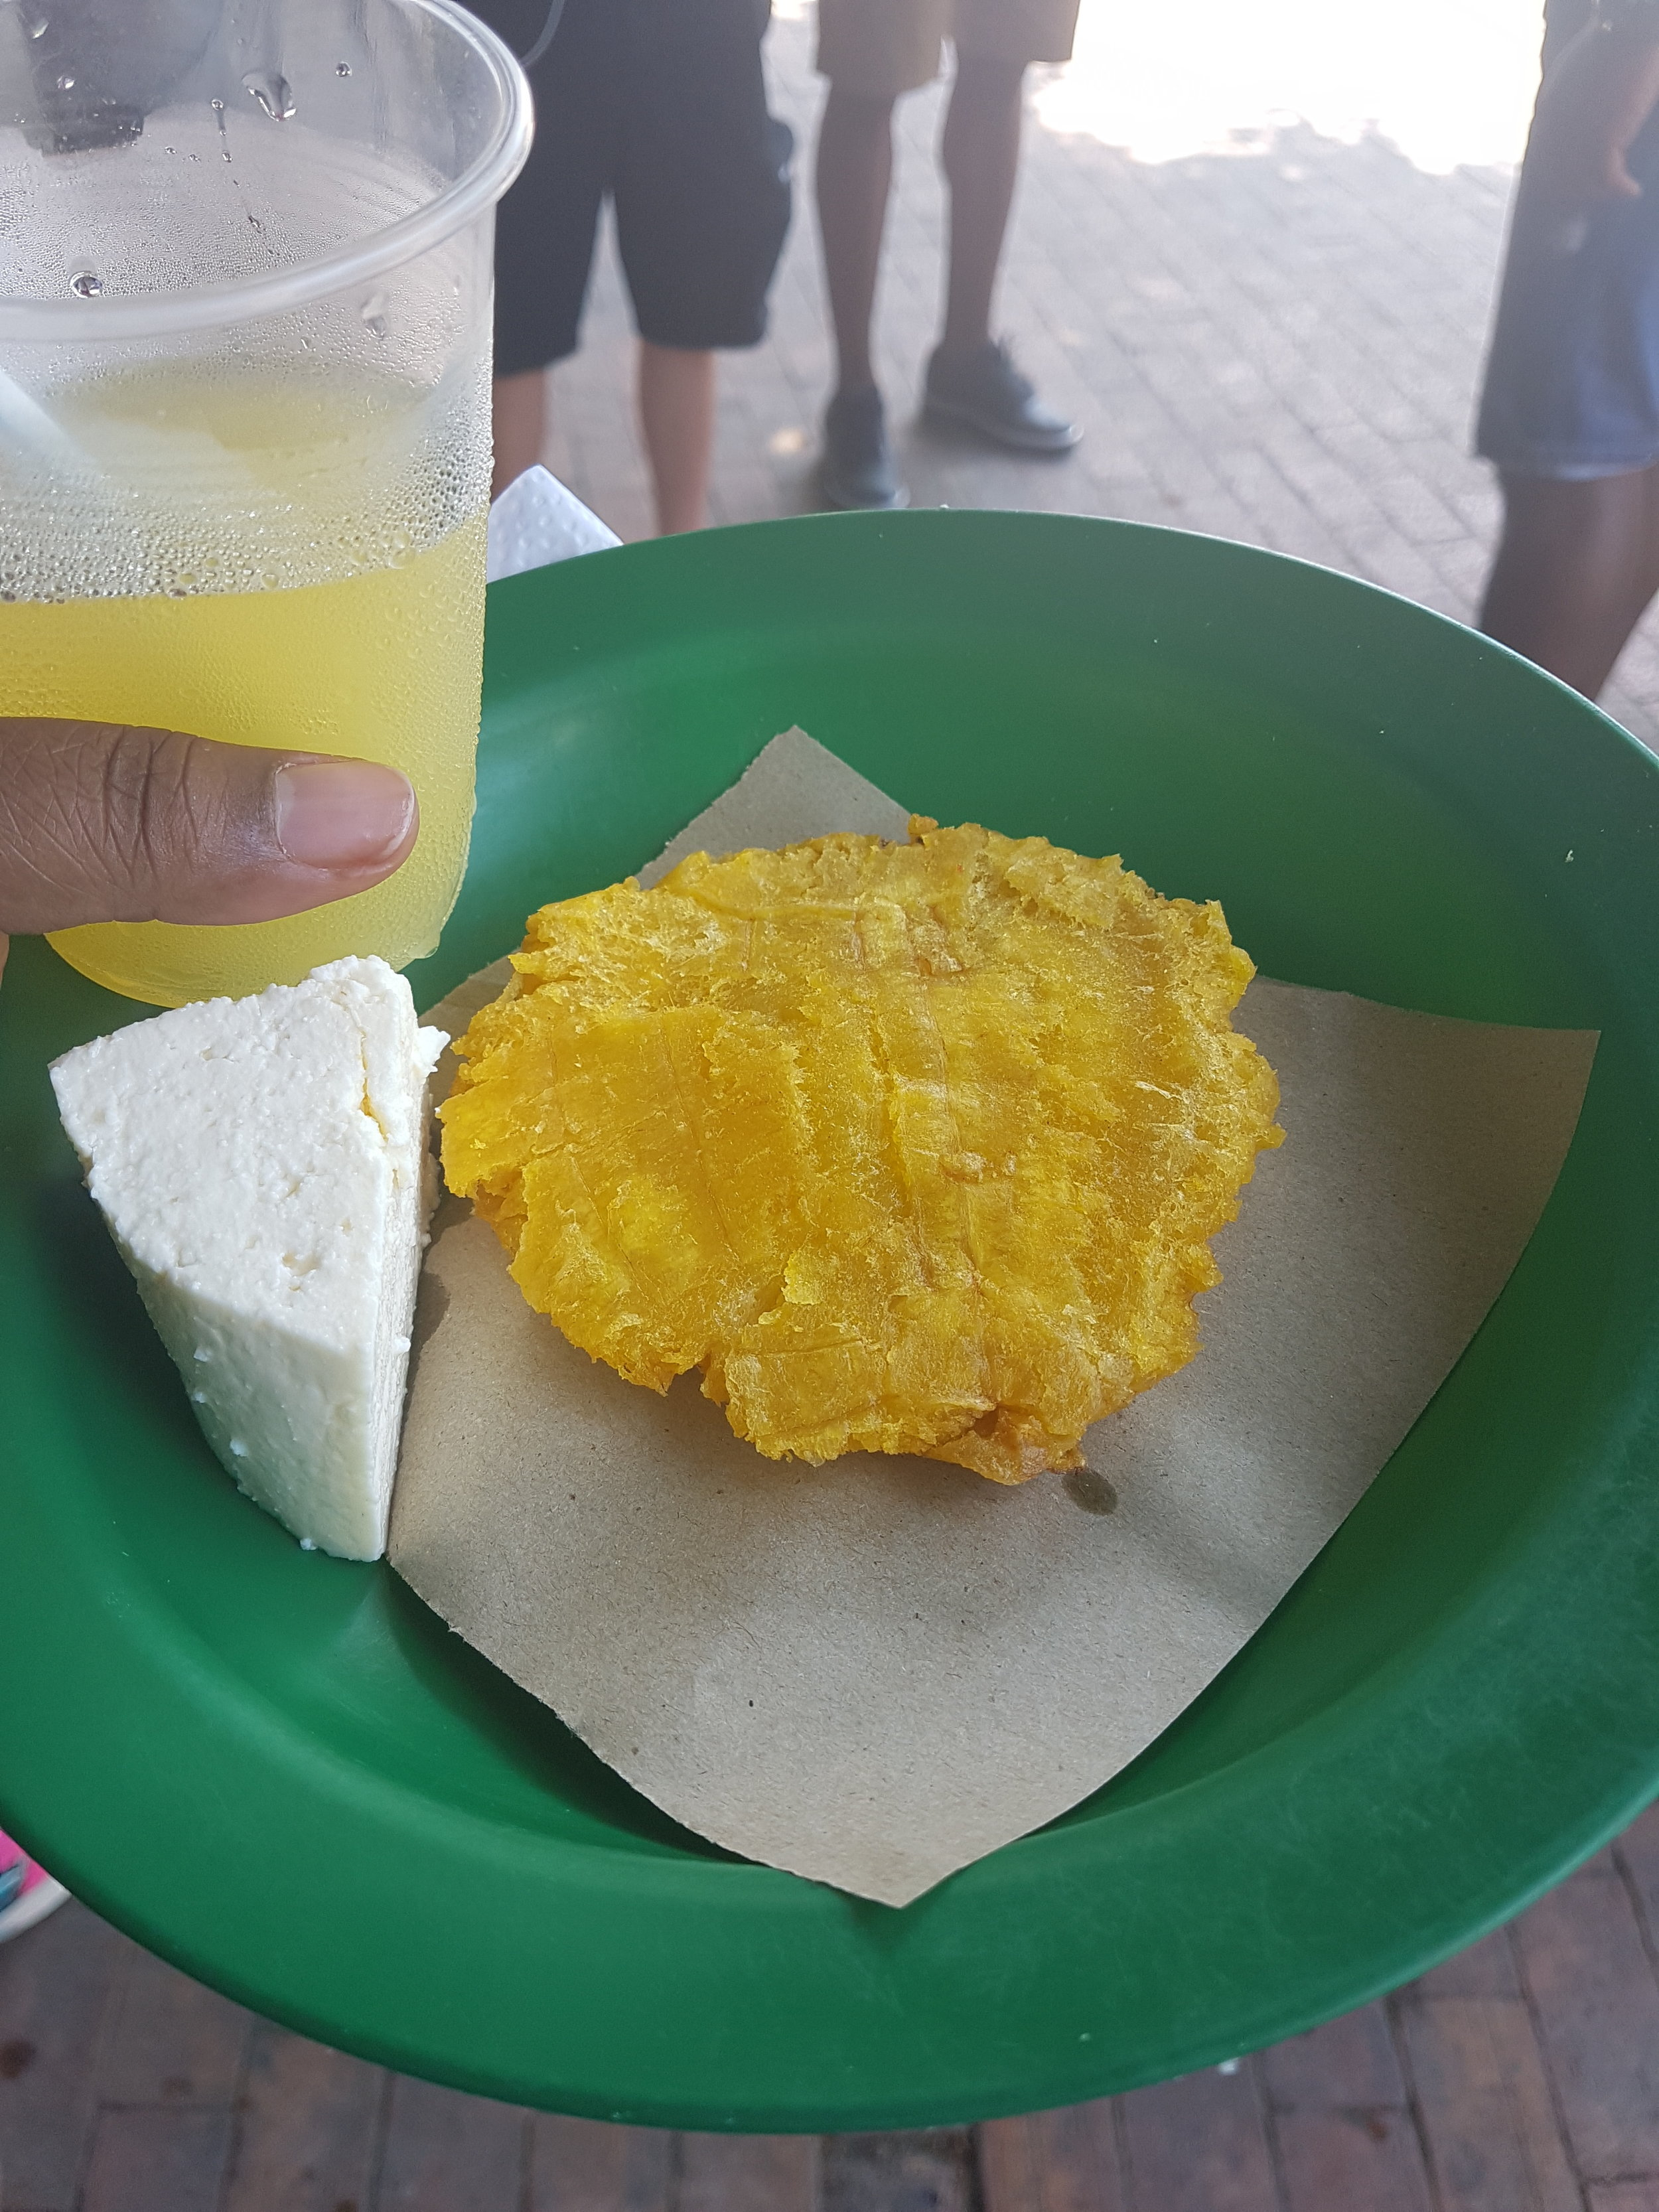 Plantain and cheese. Never heard of this combination but yolo!